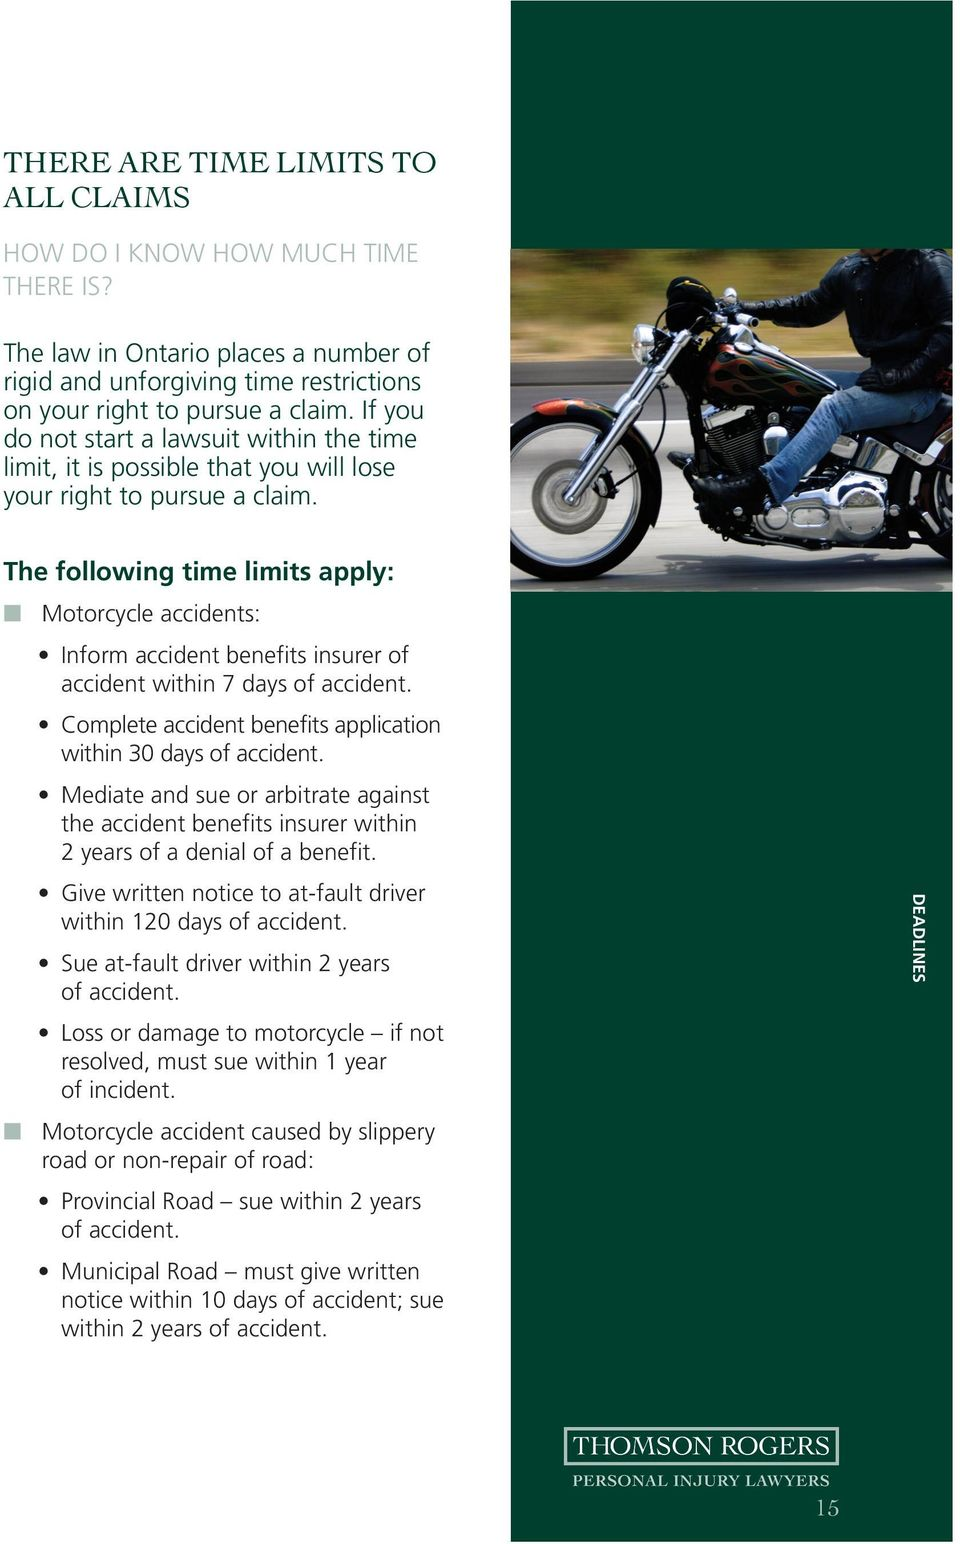 The following time limits apply: Motorcycle accidents: Inform accident benefits insurer of accident within 7 days of accident. Complete accident benefits application within 30 days of accident.